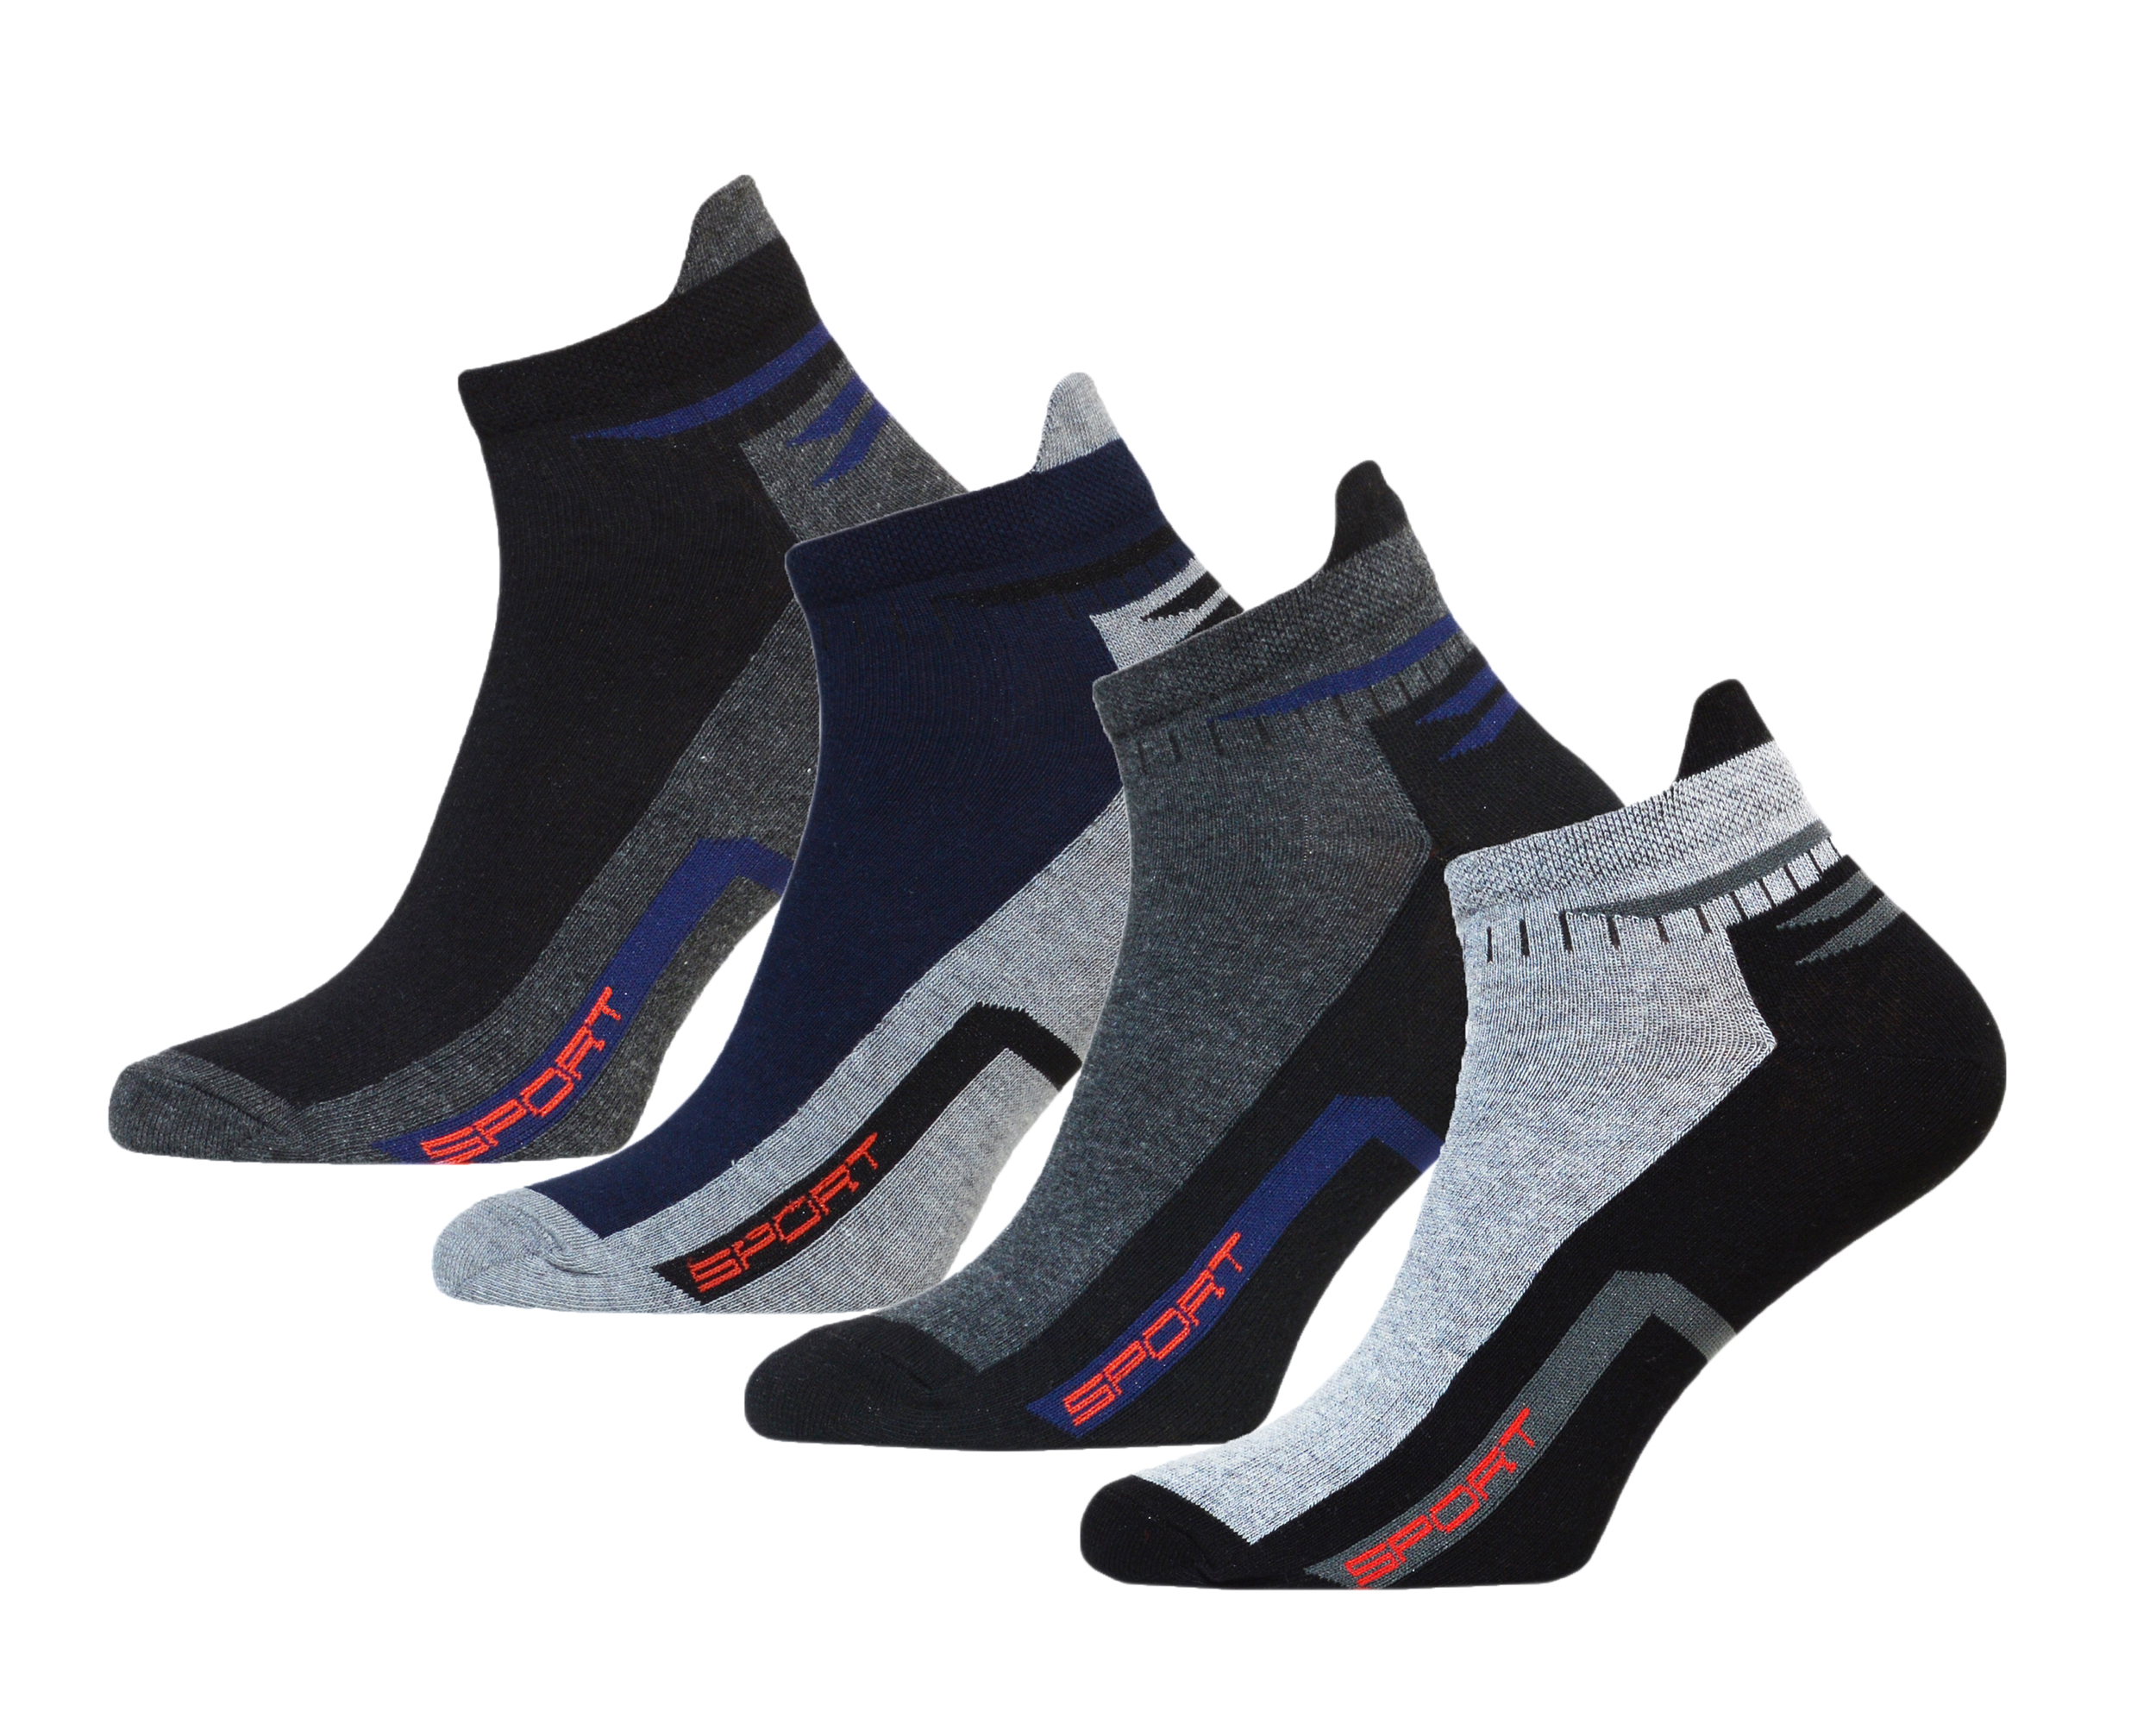 8 paar herren sneaker mit hochferse socken mit komfortbund sommersocken sneaker ebay. Black Bedroom Furniture Sets. Home Design Ideas